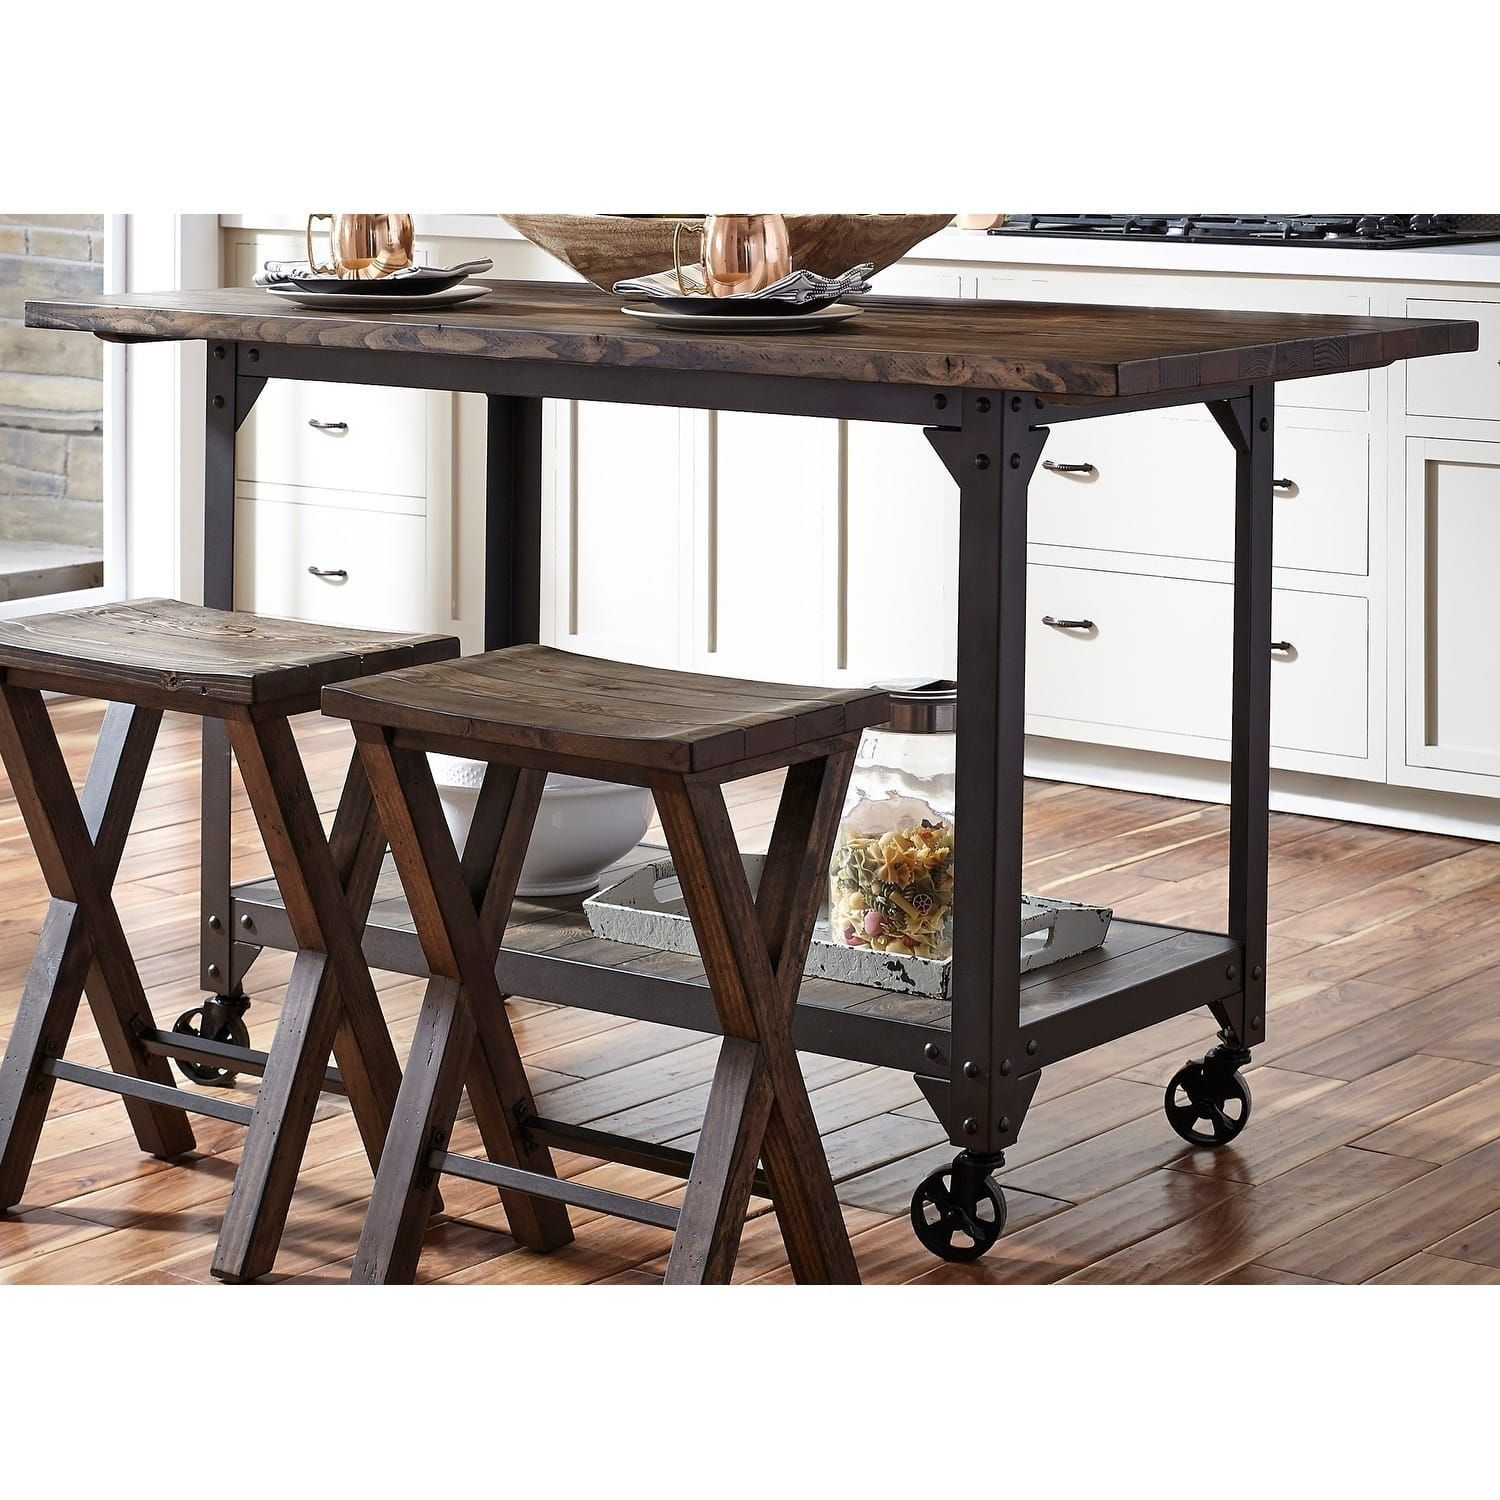 Liberty Caldwell Pewter Reclaimed Solid Pine 30Inch X 60Inch Awesome 60 Inch Kitchen Island Inspiration Design